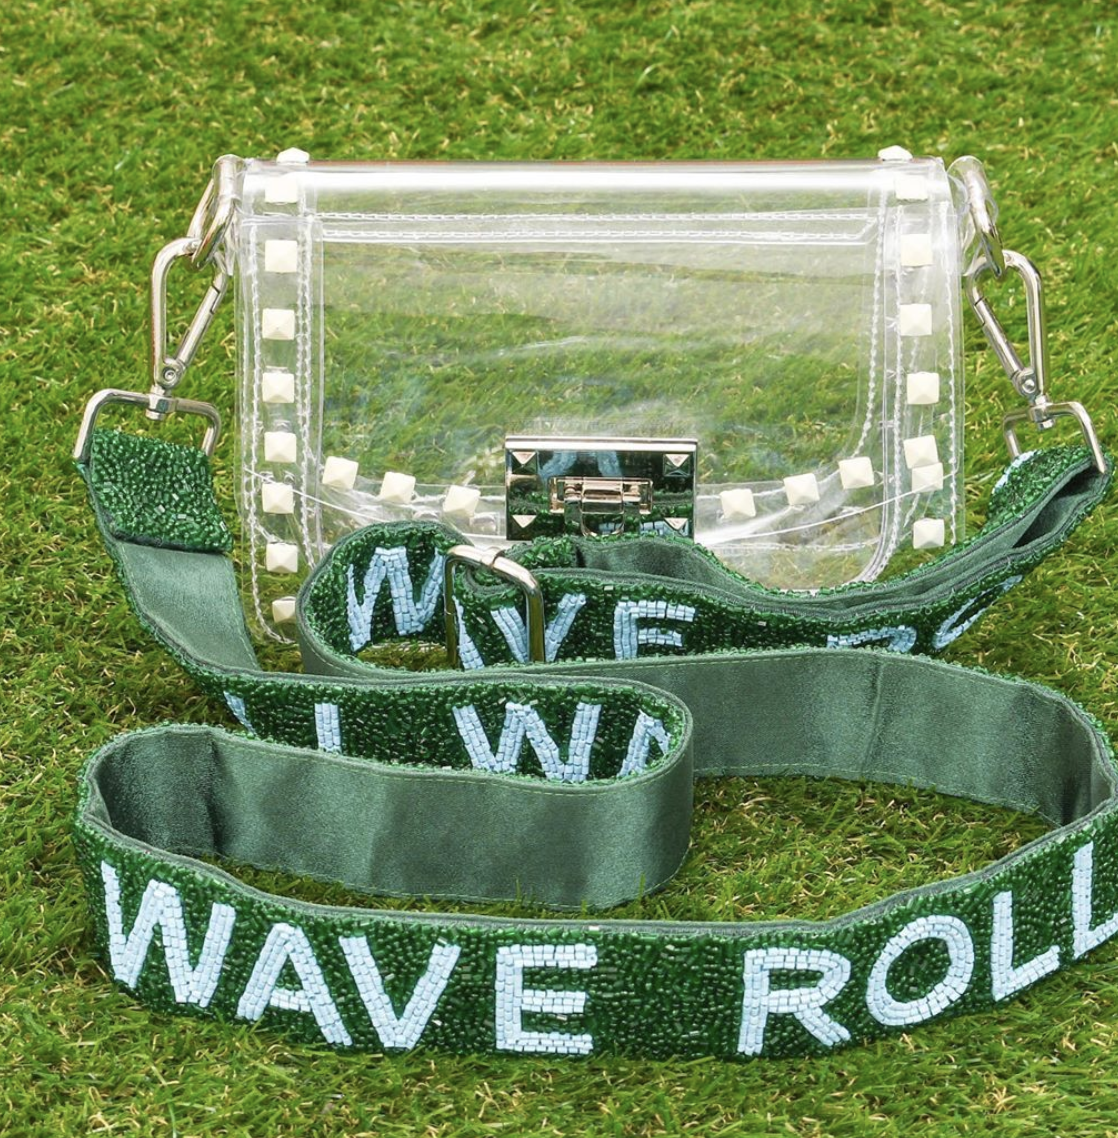 Love these custom beaded game day bag straps - the perfect way to show off your school spirit! kellyelko.com #college #collegegear #gameday #sports #gameday #giftsforher #giftguide